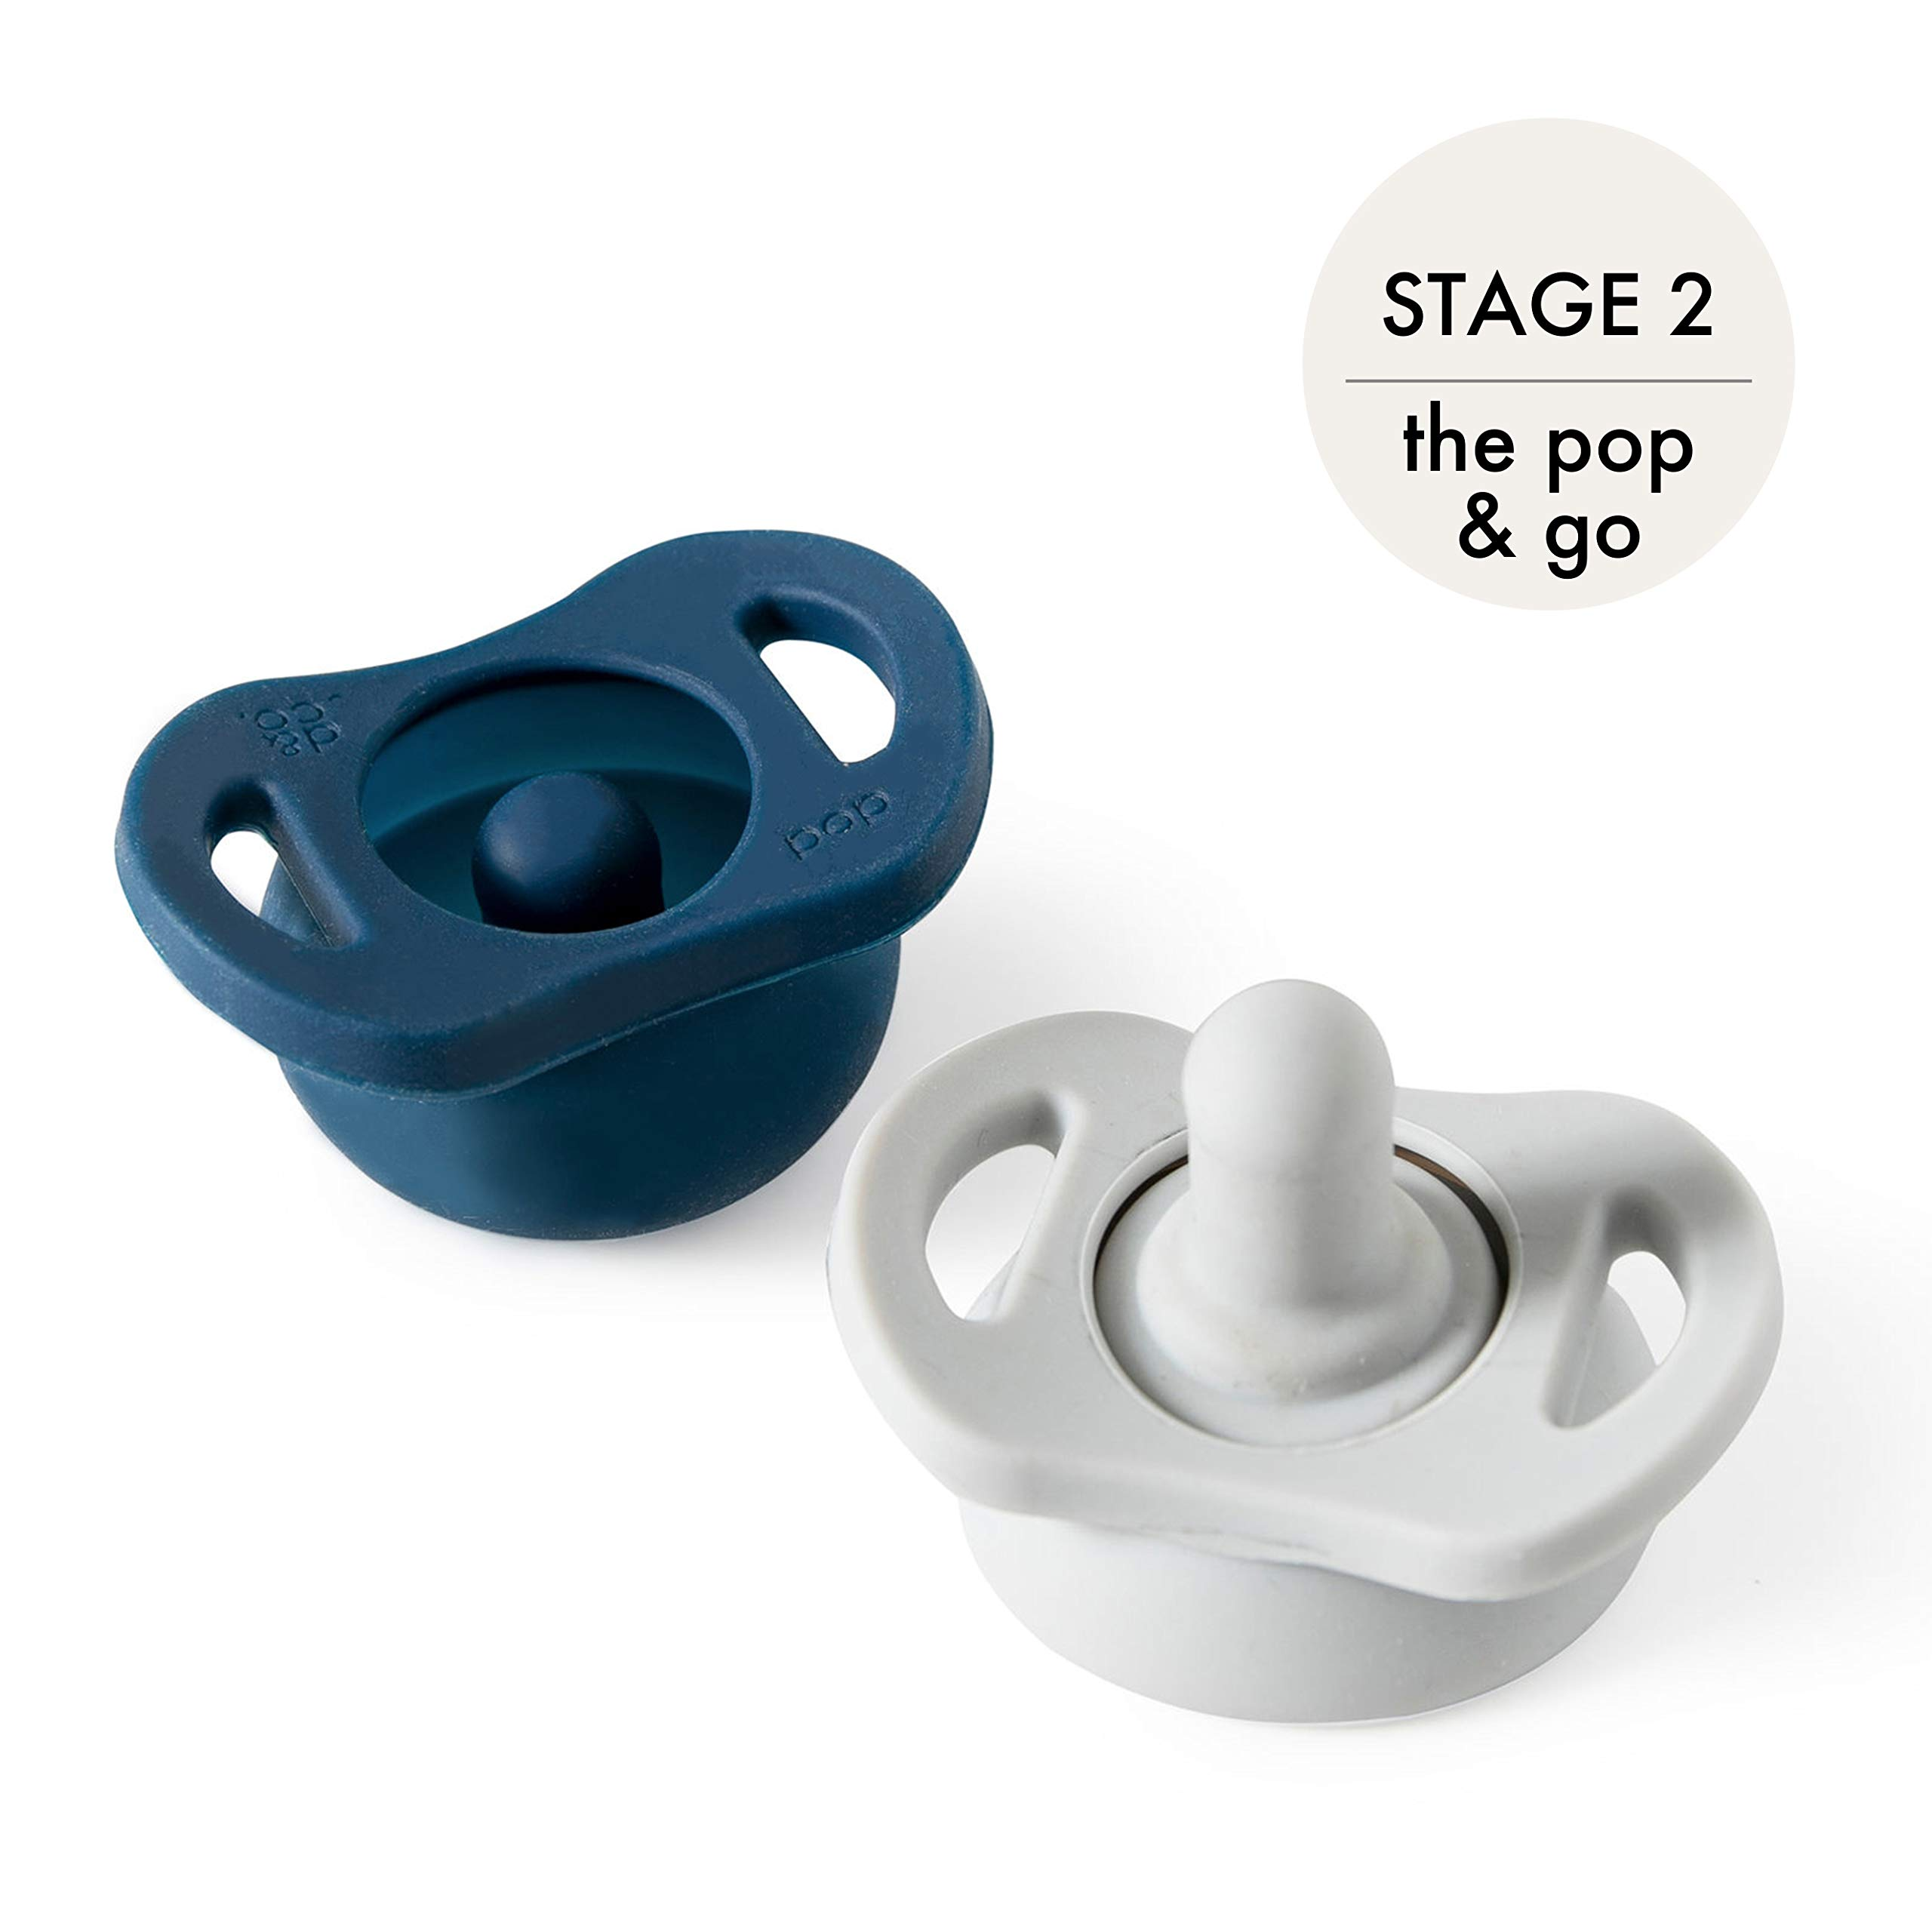 Doddle & Co. | Pop & Go Pacifier | Built-in Pacifier Case | Pinch to Close Version | 2-Pack - Stage 2 for Ages 3+ Months | Natural Nipple | 100% Silicone | BPA Free for Baby Infant (Navy/Grey)